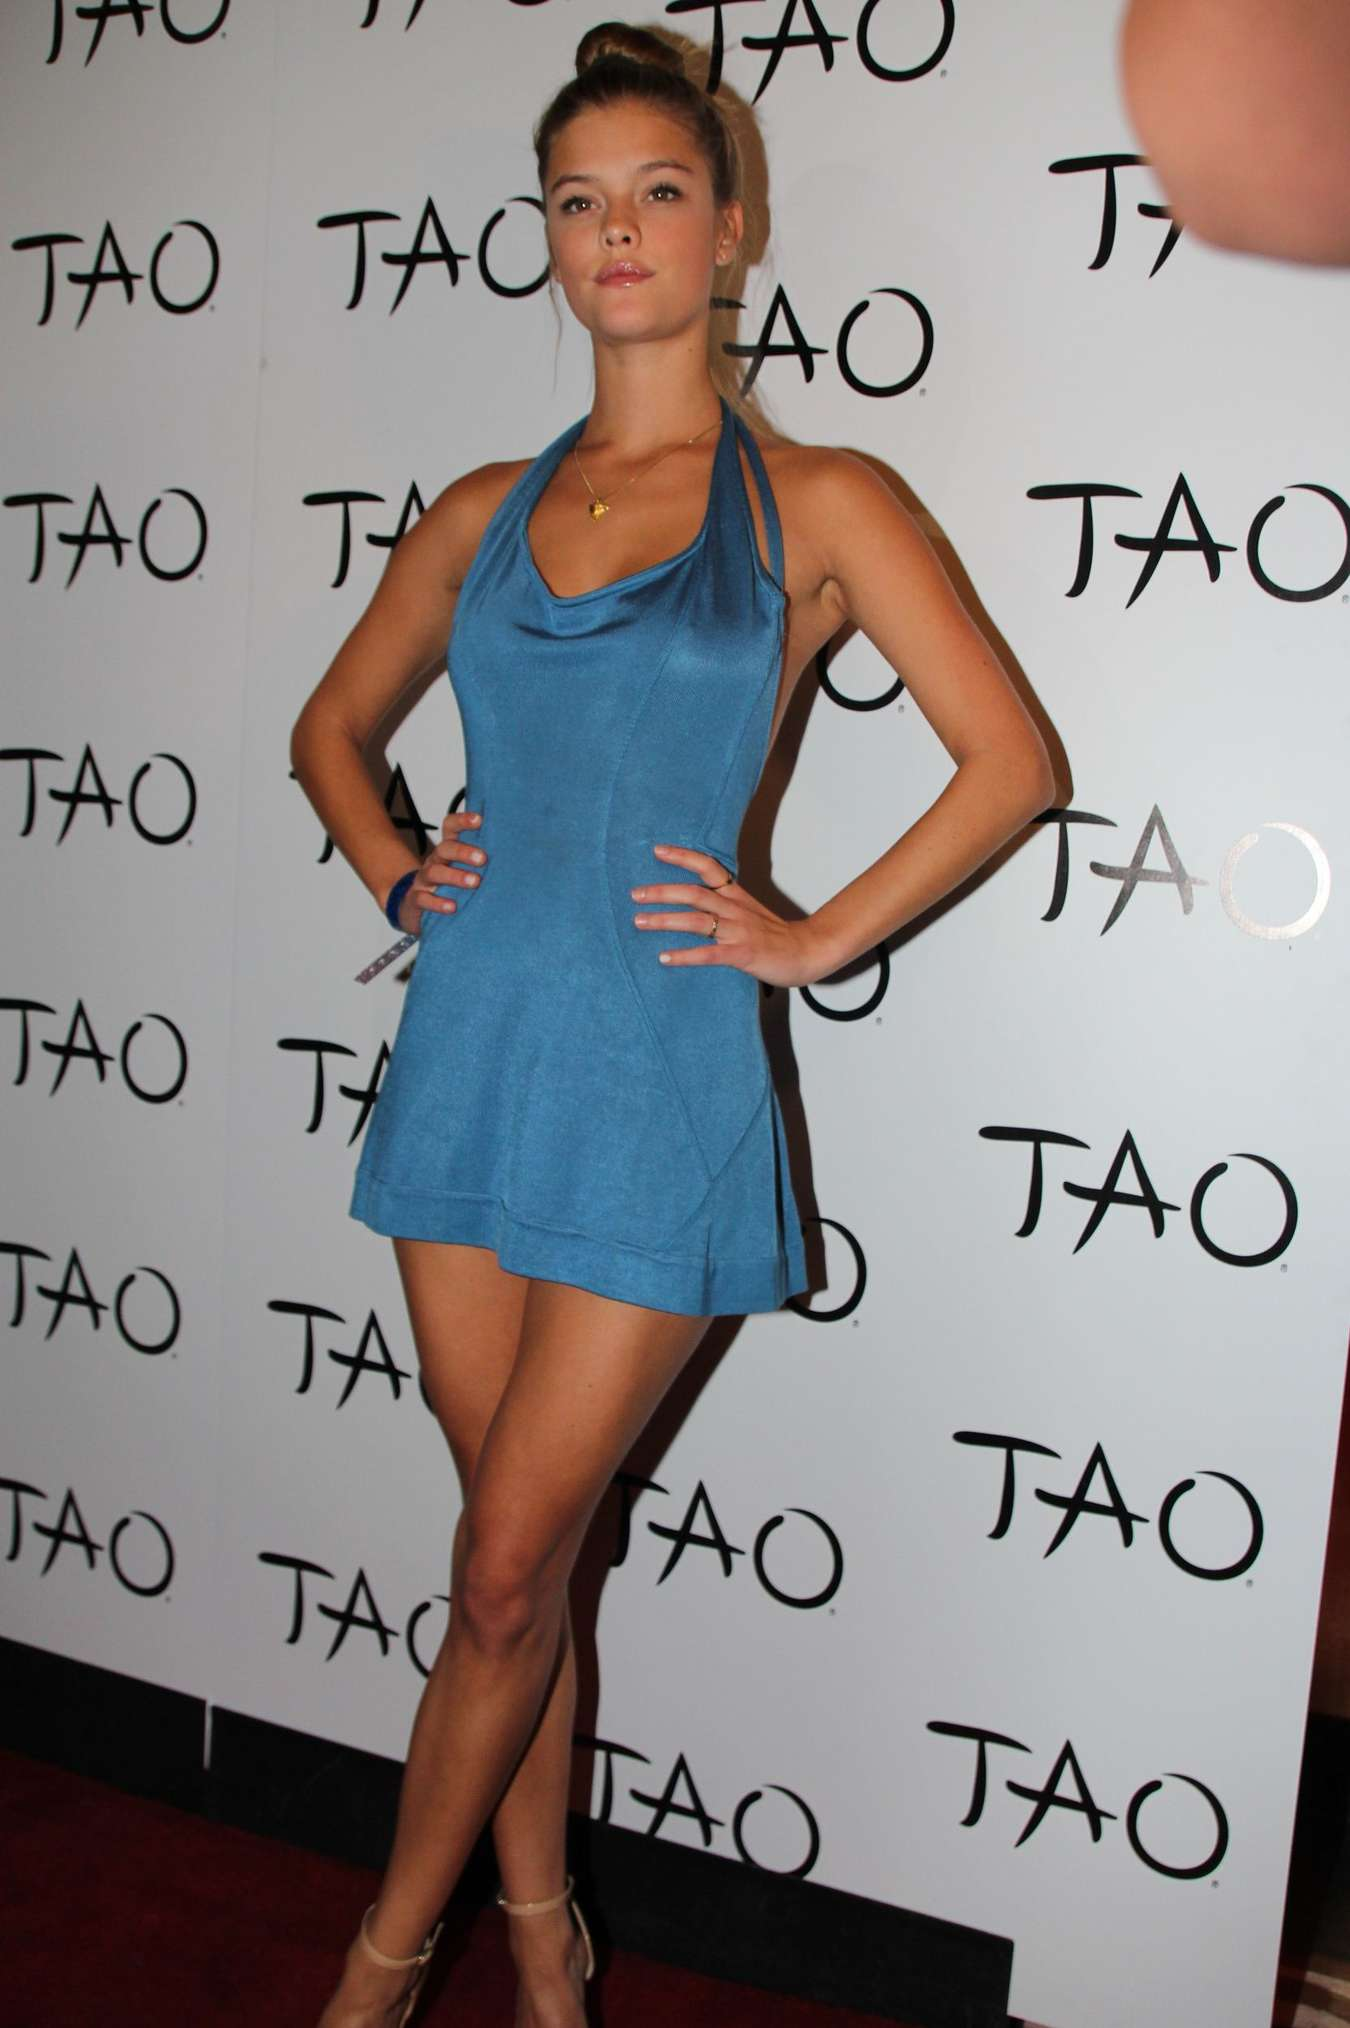 Nina Agdal - Seven Deadly Sins Anniversary Party at TAO Nightclub in ...